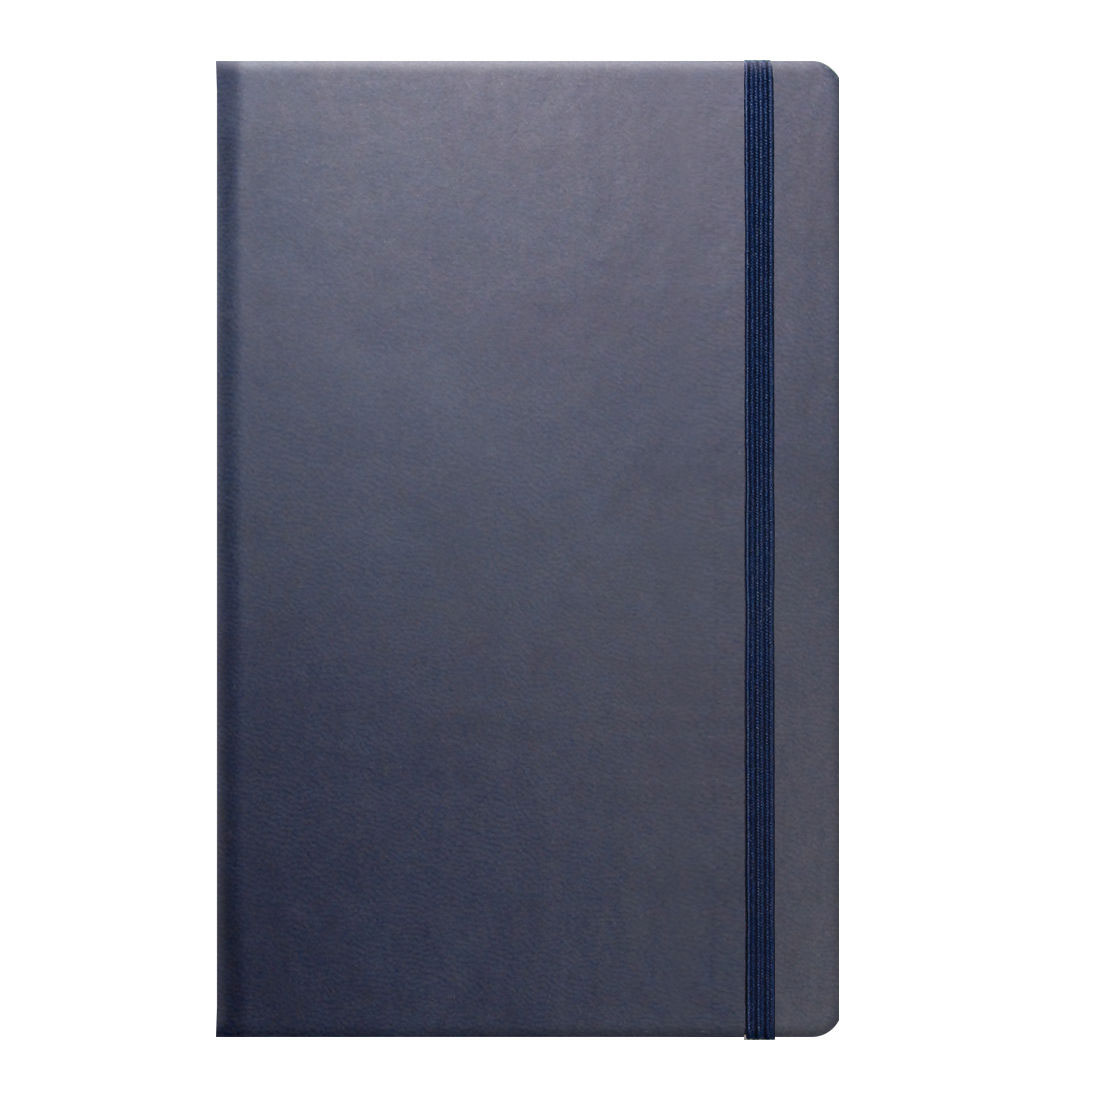 Reflexa Notebook Range - Reflexa Notebook - Grey